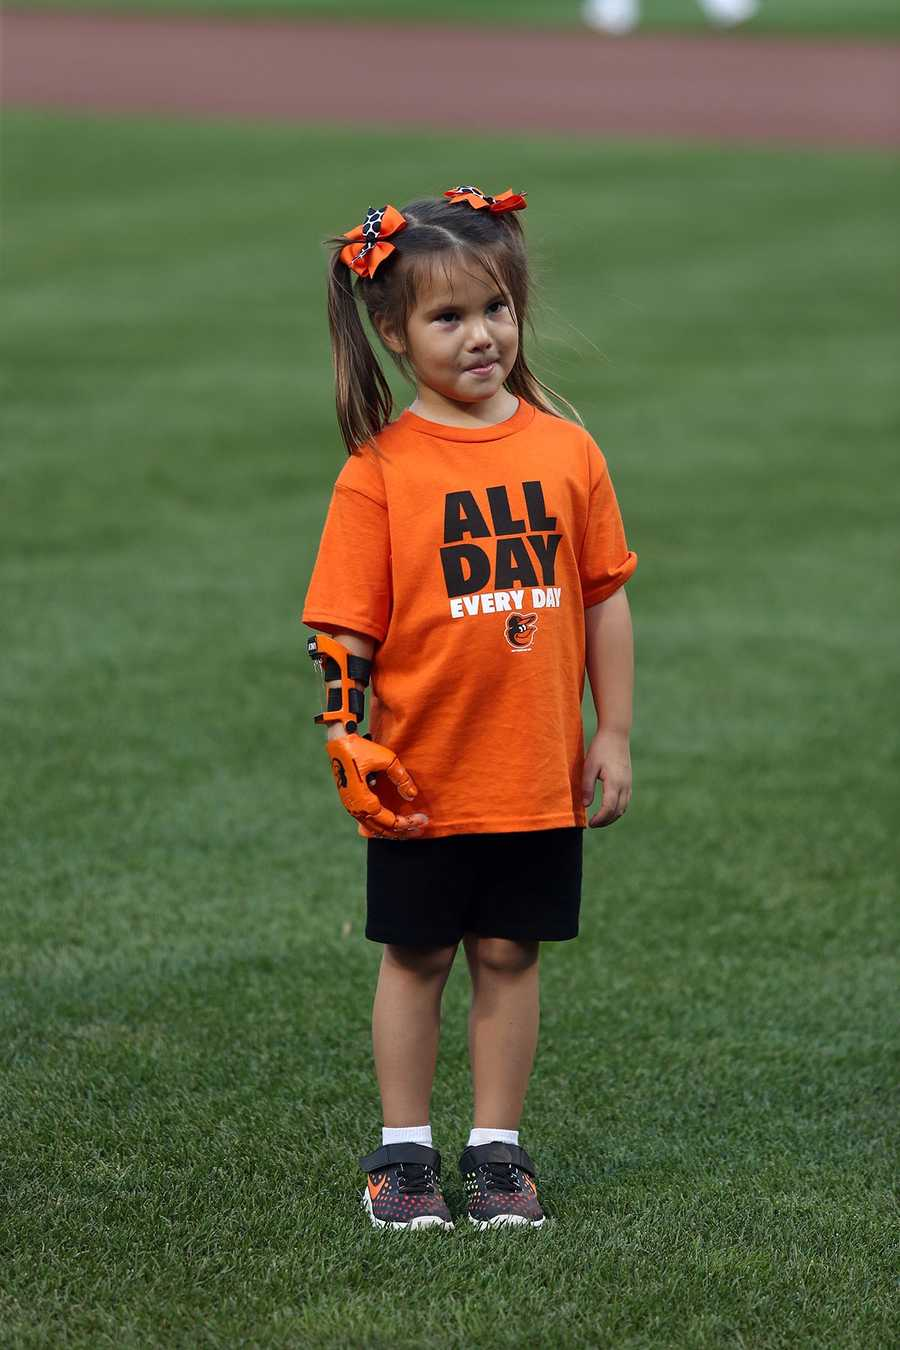 Hailey Dawson, 5, of Las Vegas, was born with Poland Syndrome, a rare birth defect that causes underdevelopment of the pectoral muscle on one side of the body and deformation of the hand.